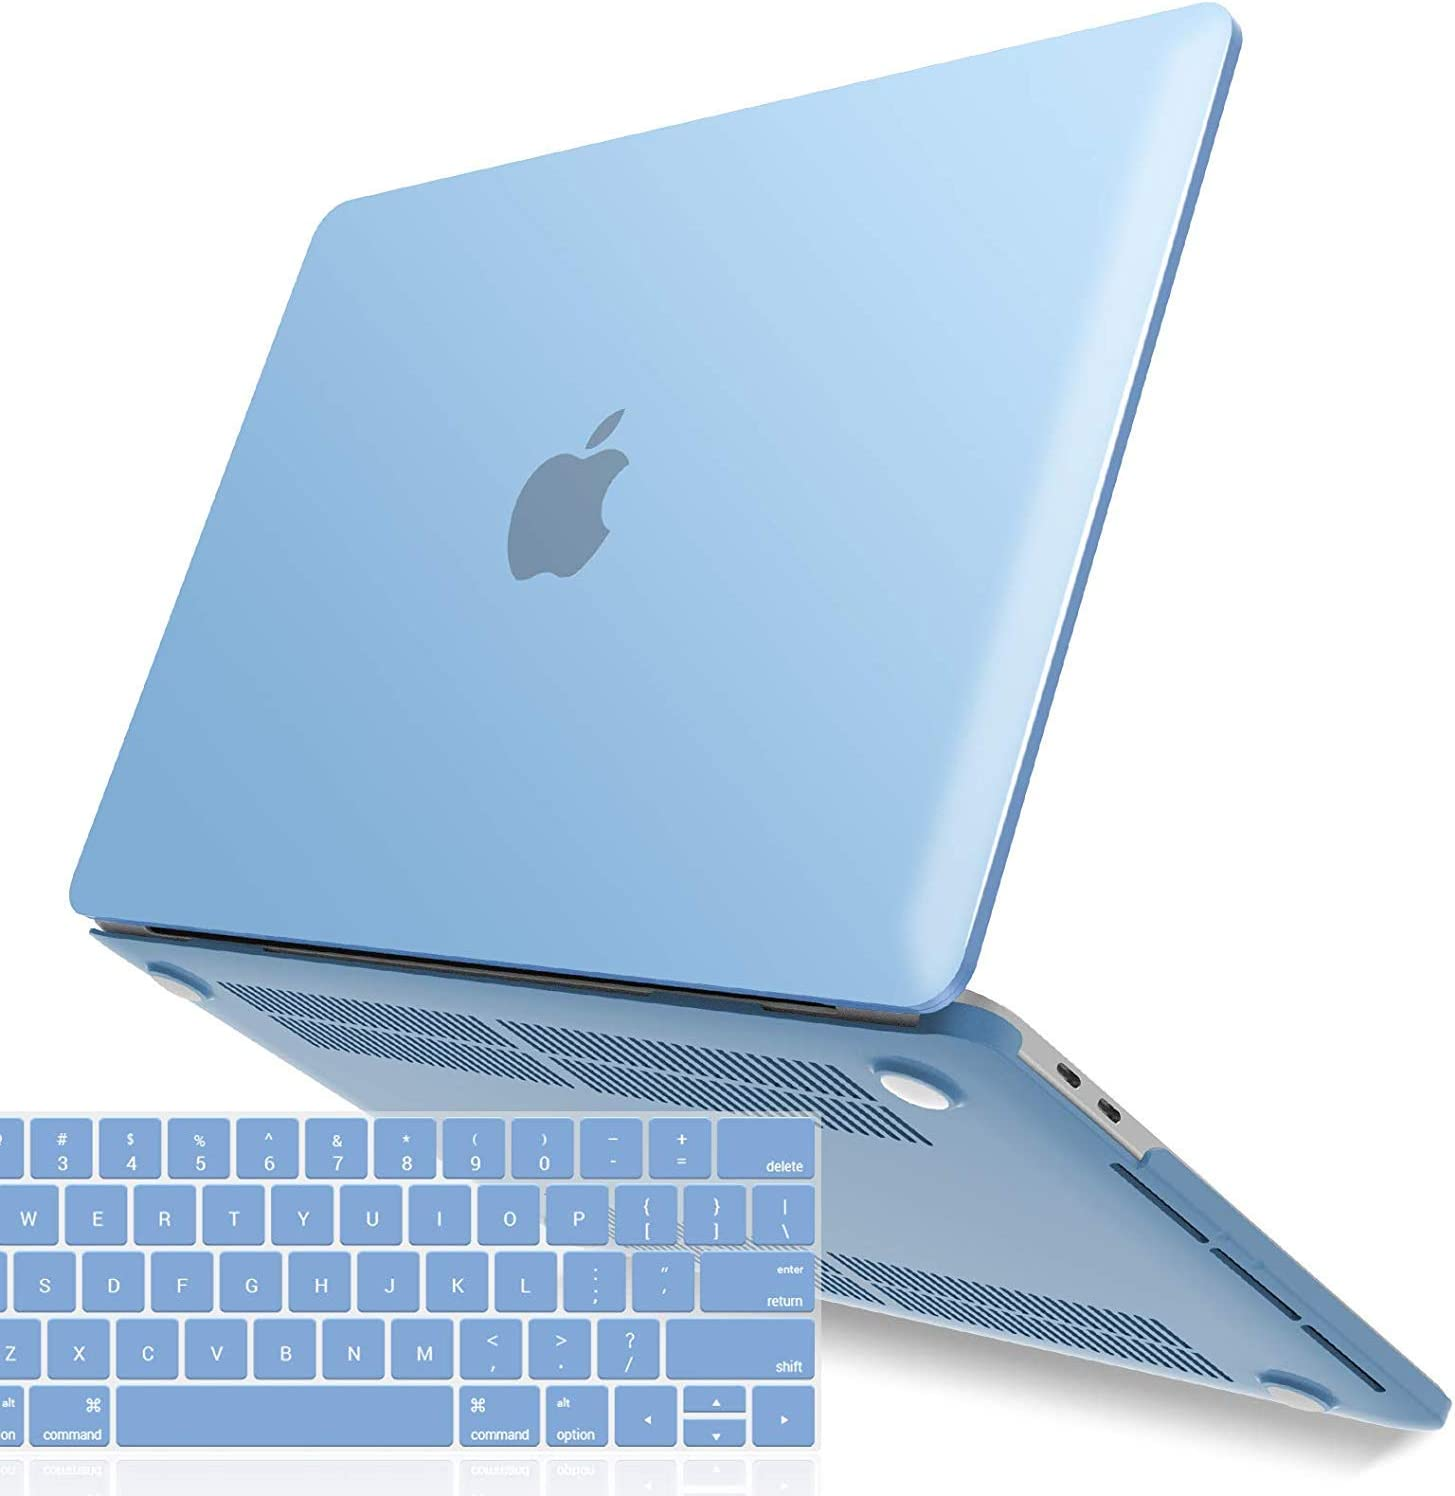 IBENZER New 2020 MacBook Pro 13 Inch Case M1 A2338 A2289 A2251 A2159 A1989 A1706 A1708, Hard Shell Case with Keyboard Cover for Apple Mac Pro 13 Touch Bar(2020-2016), Airy Blue, T13ARBL+1B